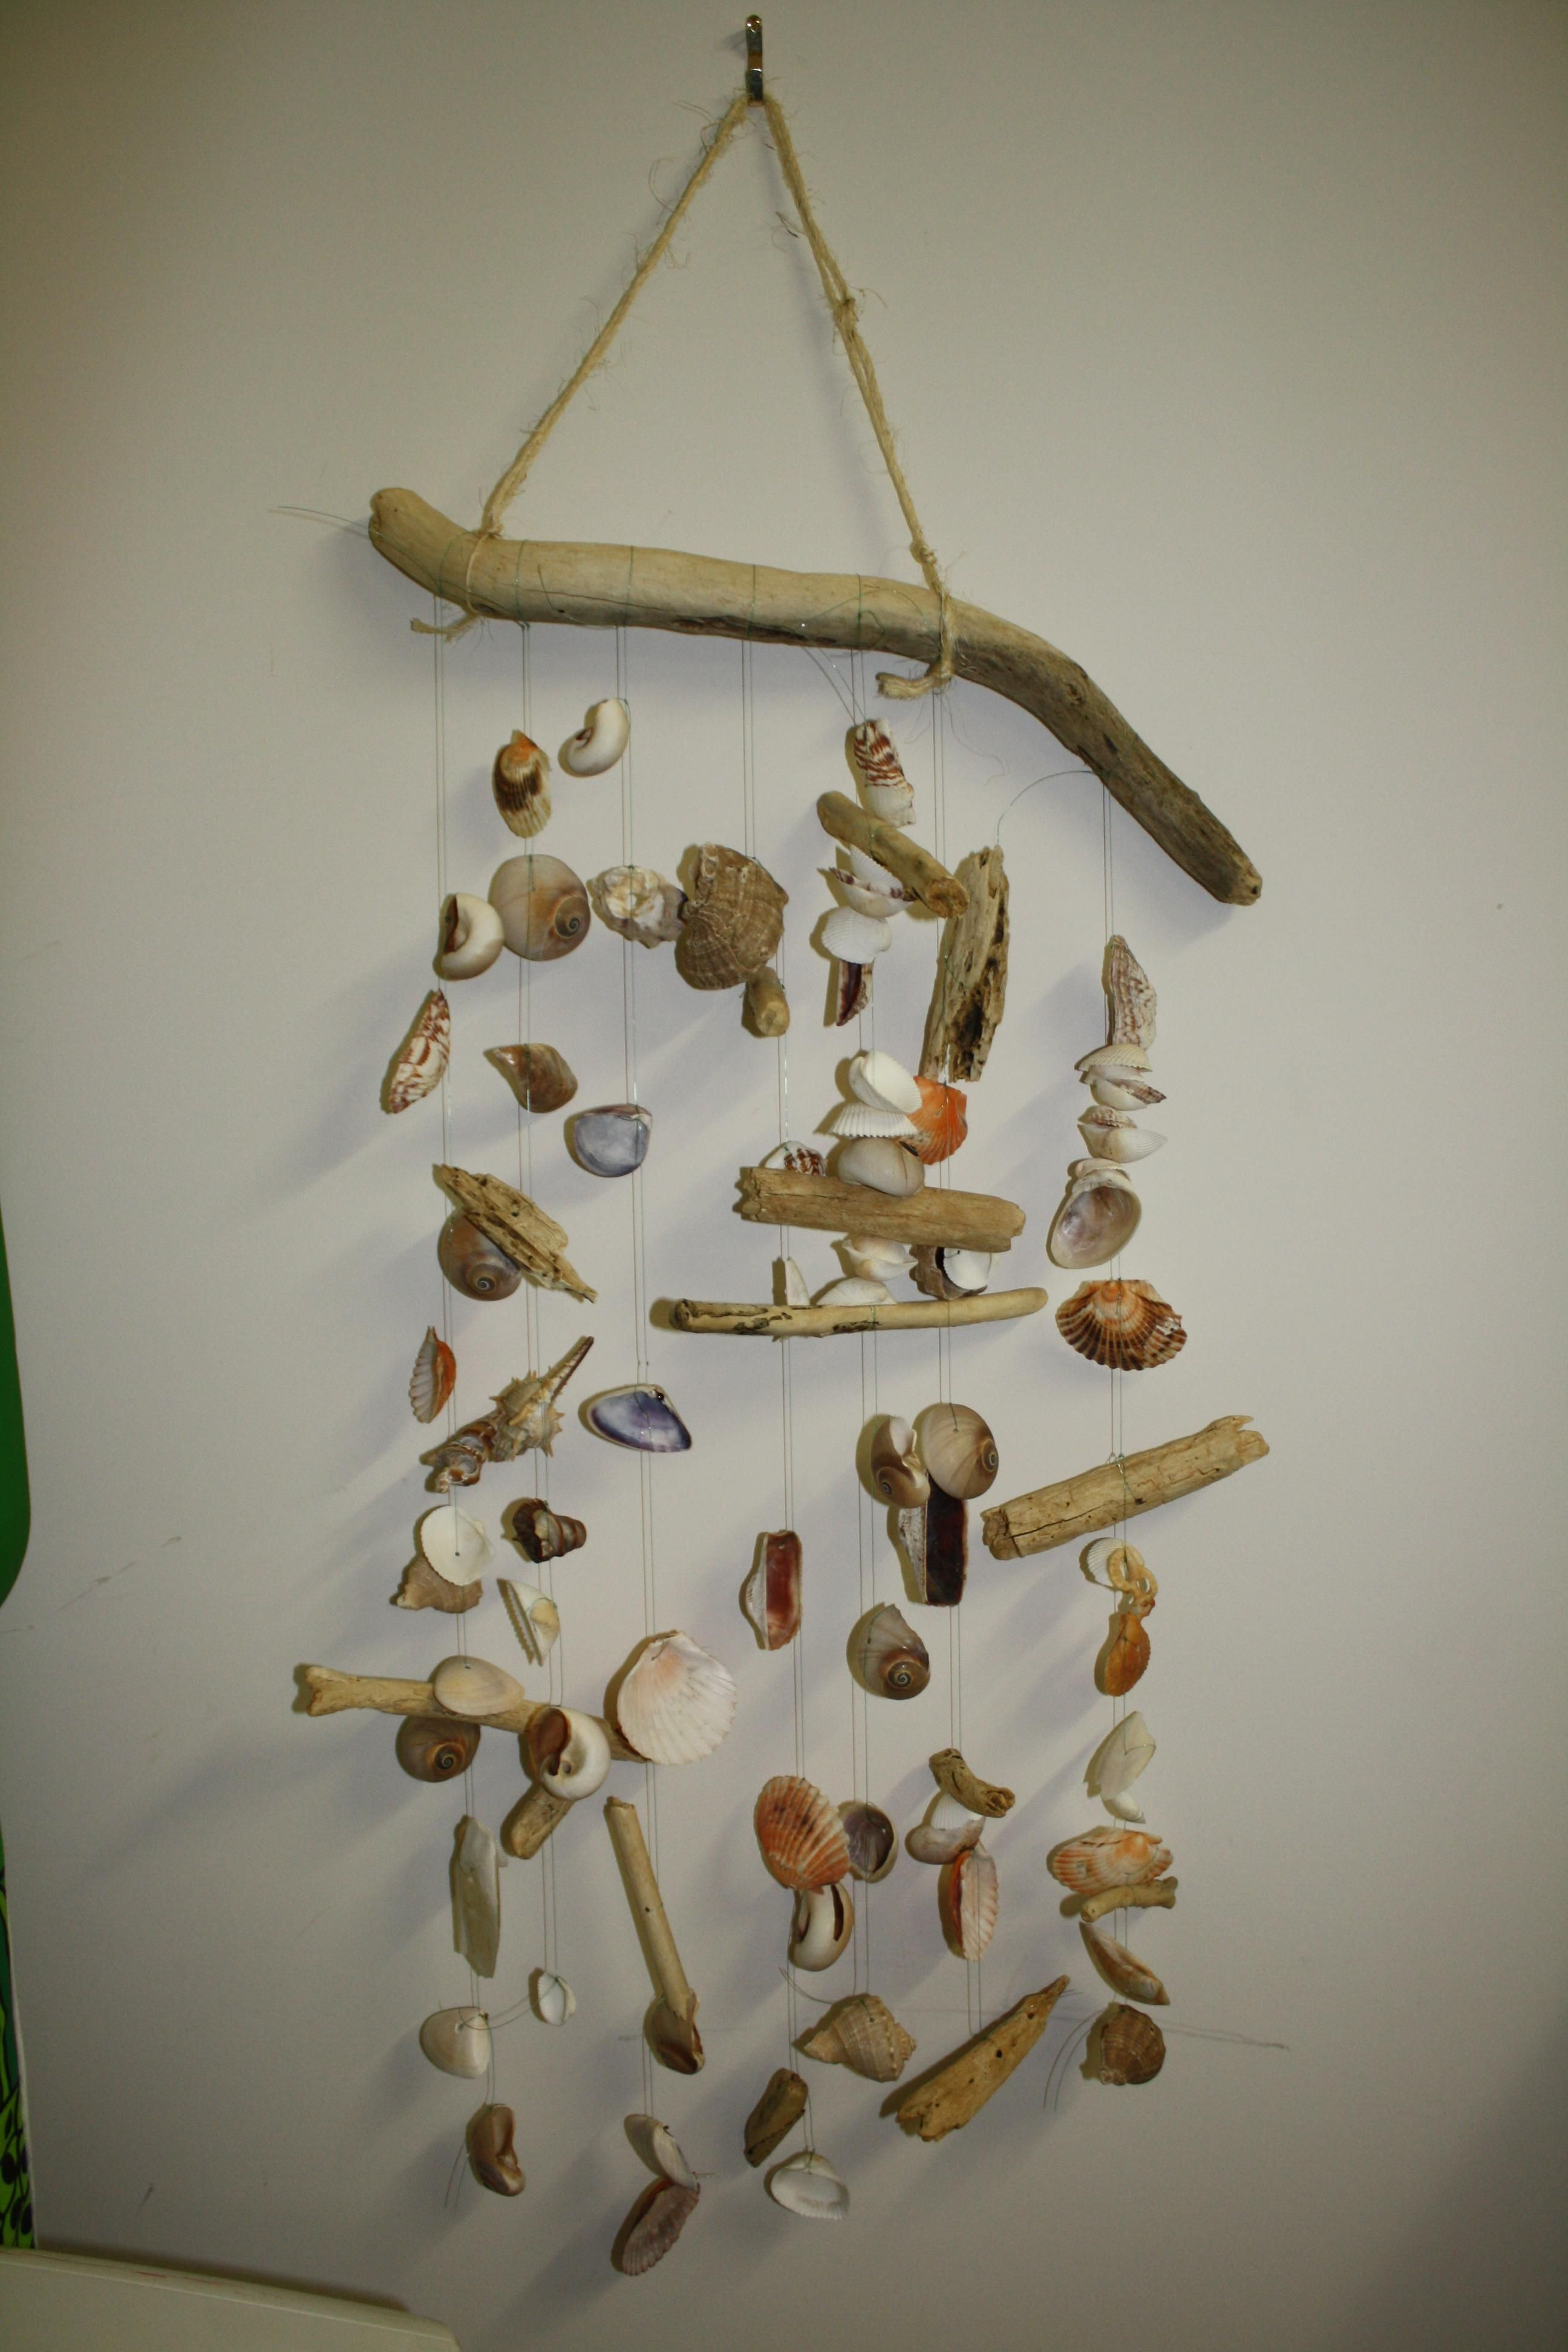 Seashell Projects Hanging Seashells Chime Together With Every